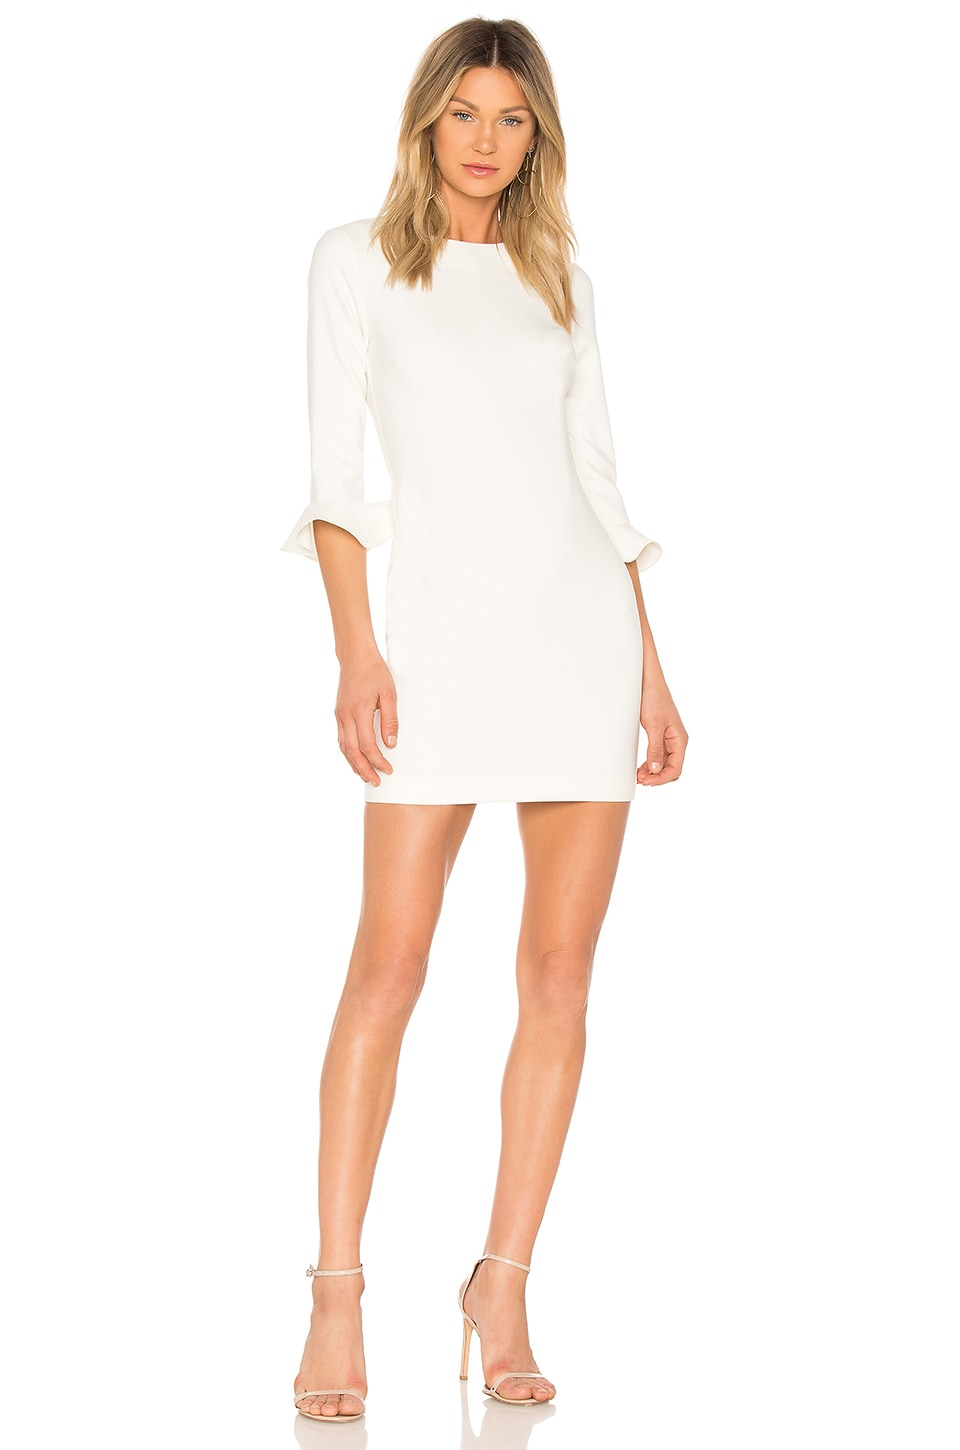 LIKELY Bedford Dress in White